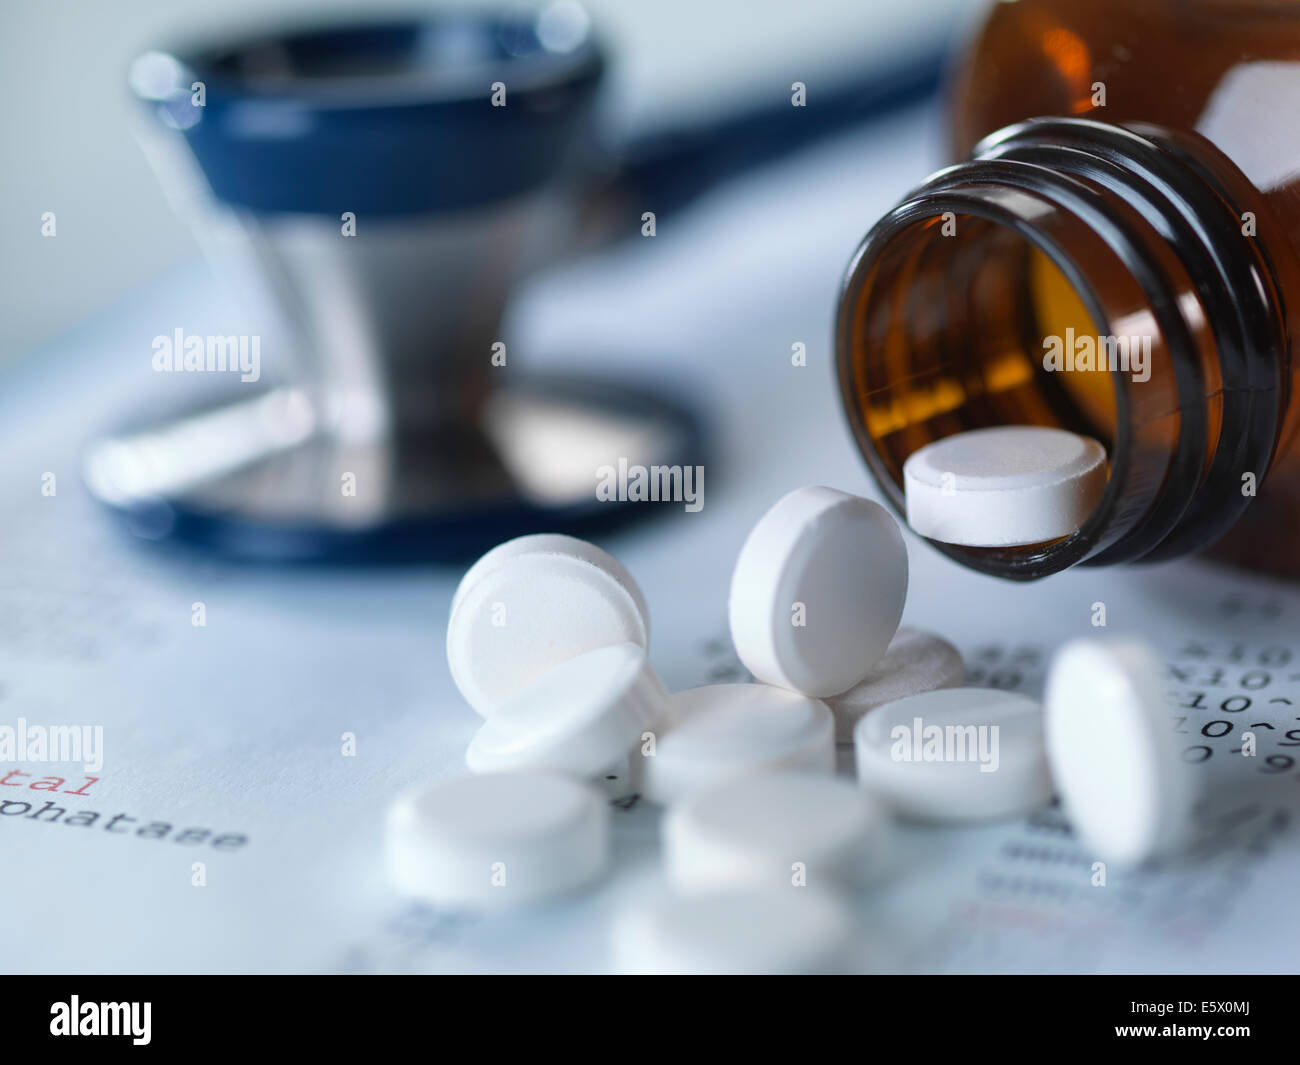 Close up of stethoscope and pain killers pouring onto medical test results - Stock Image